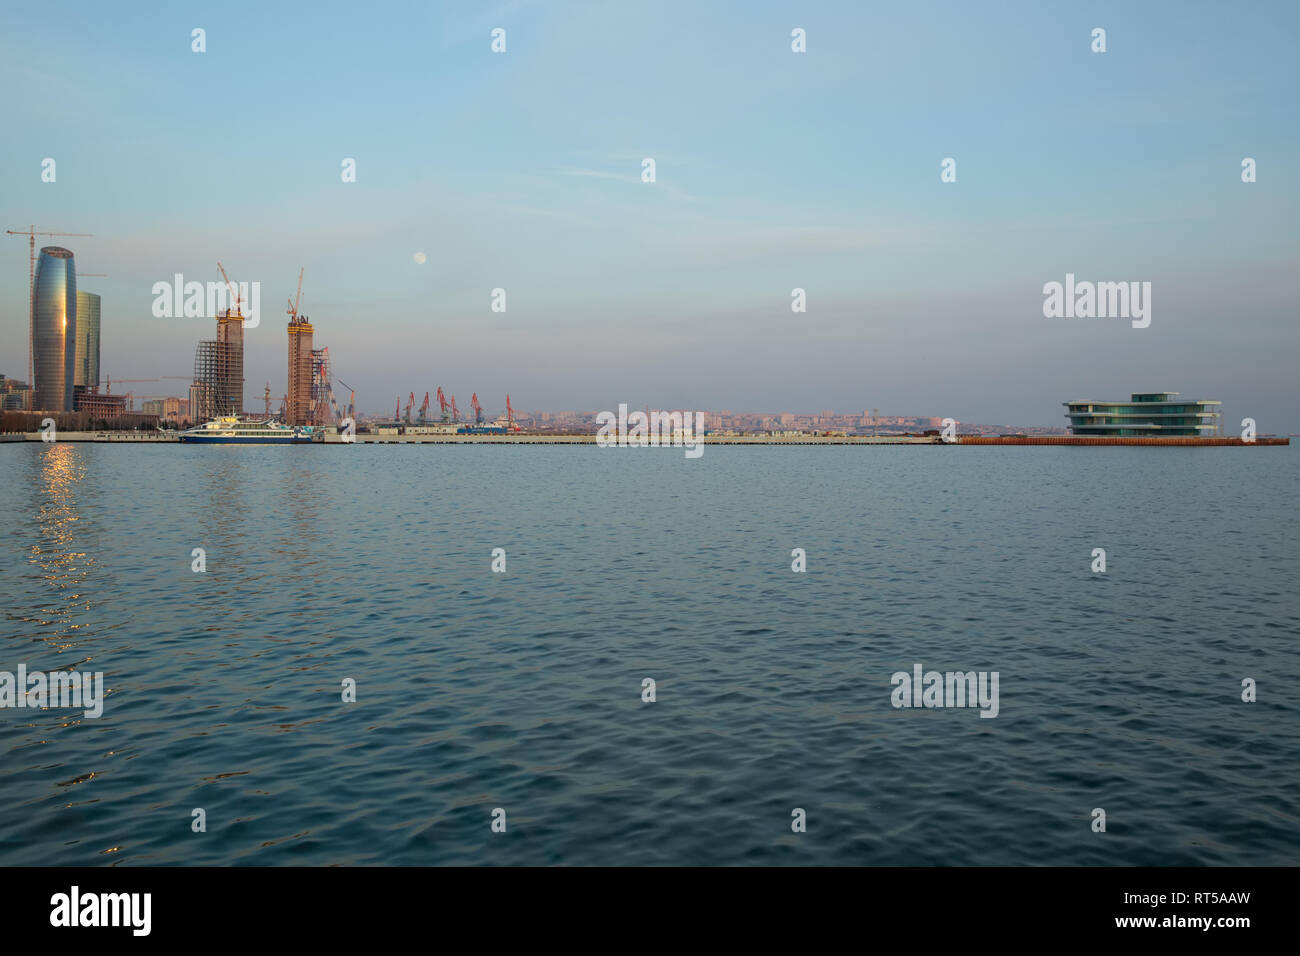 Baky skyline view from Baku boulevard the Caspian Sea embankment . Tall buildings in Baku. Ship cranes . Moon. harbor . Port Stock Photo